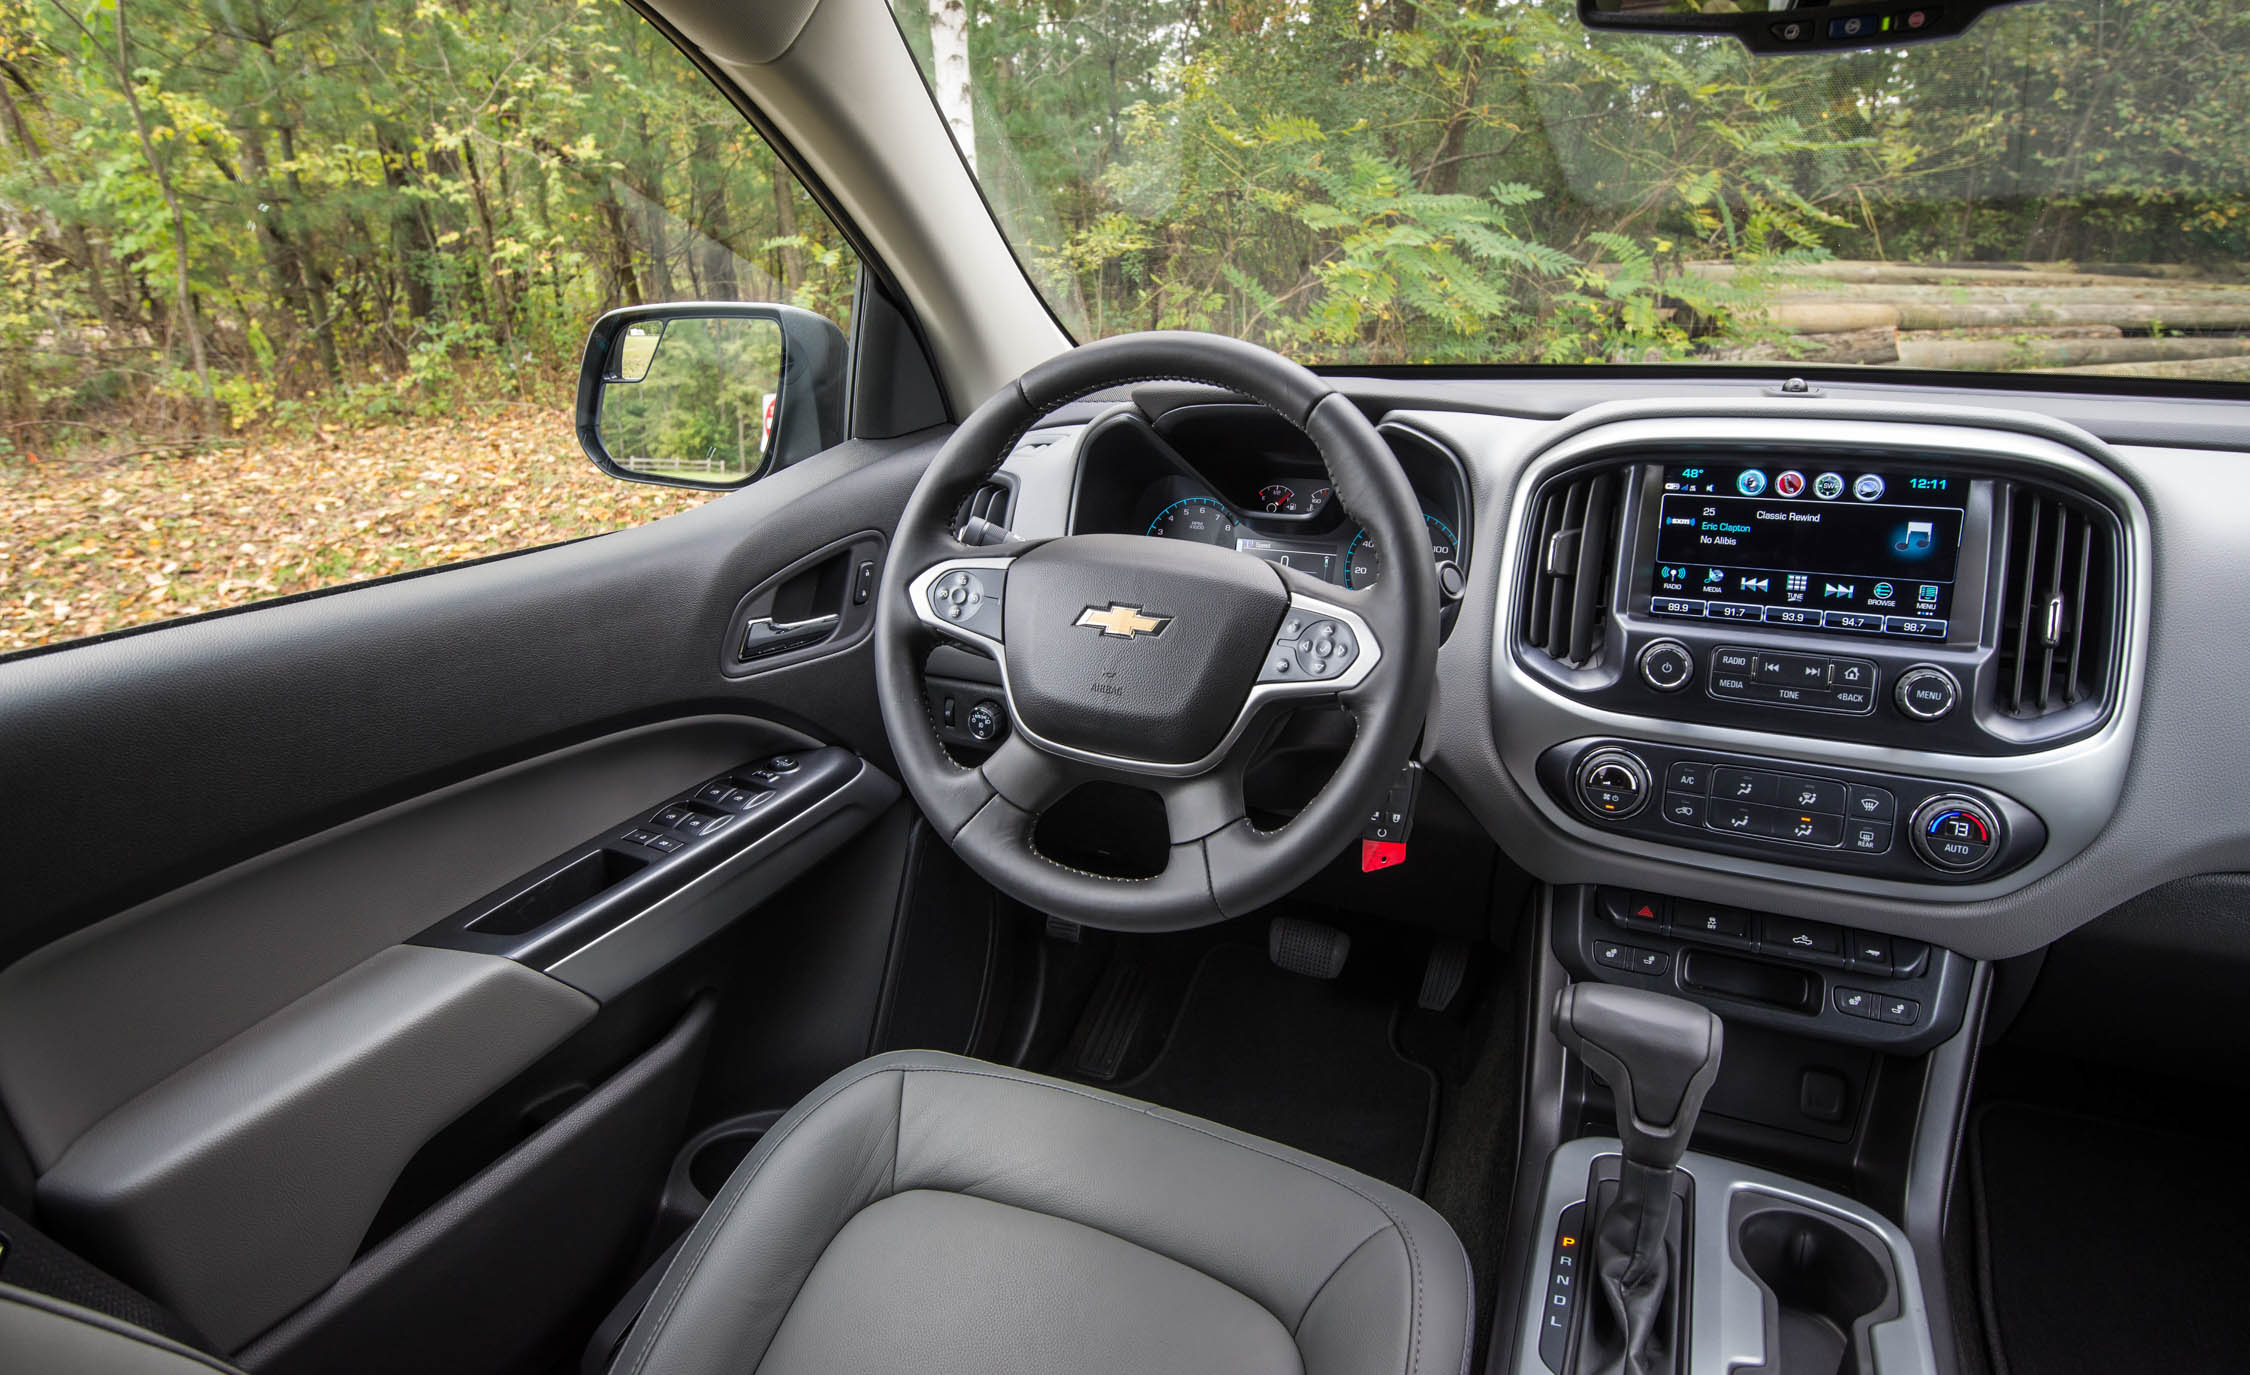 2017 Chevrolet Colorado LT Interior Steering And Headunit (View 10 of 41)